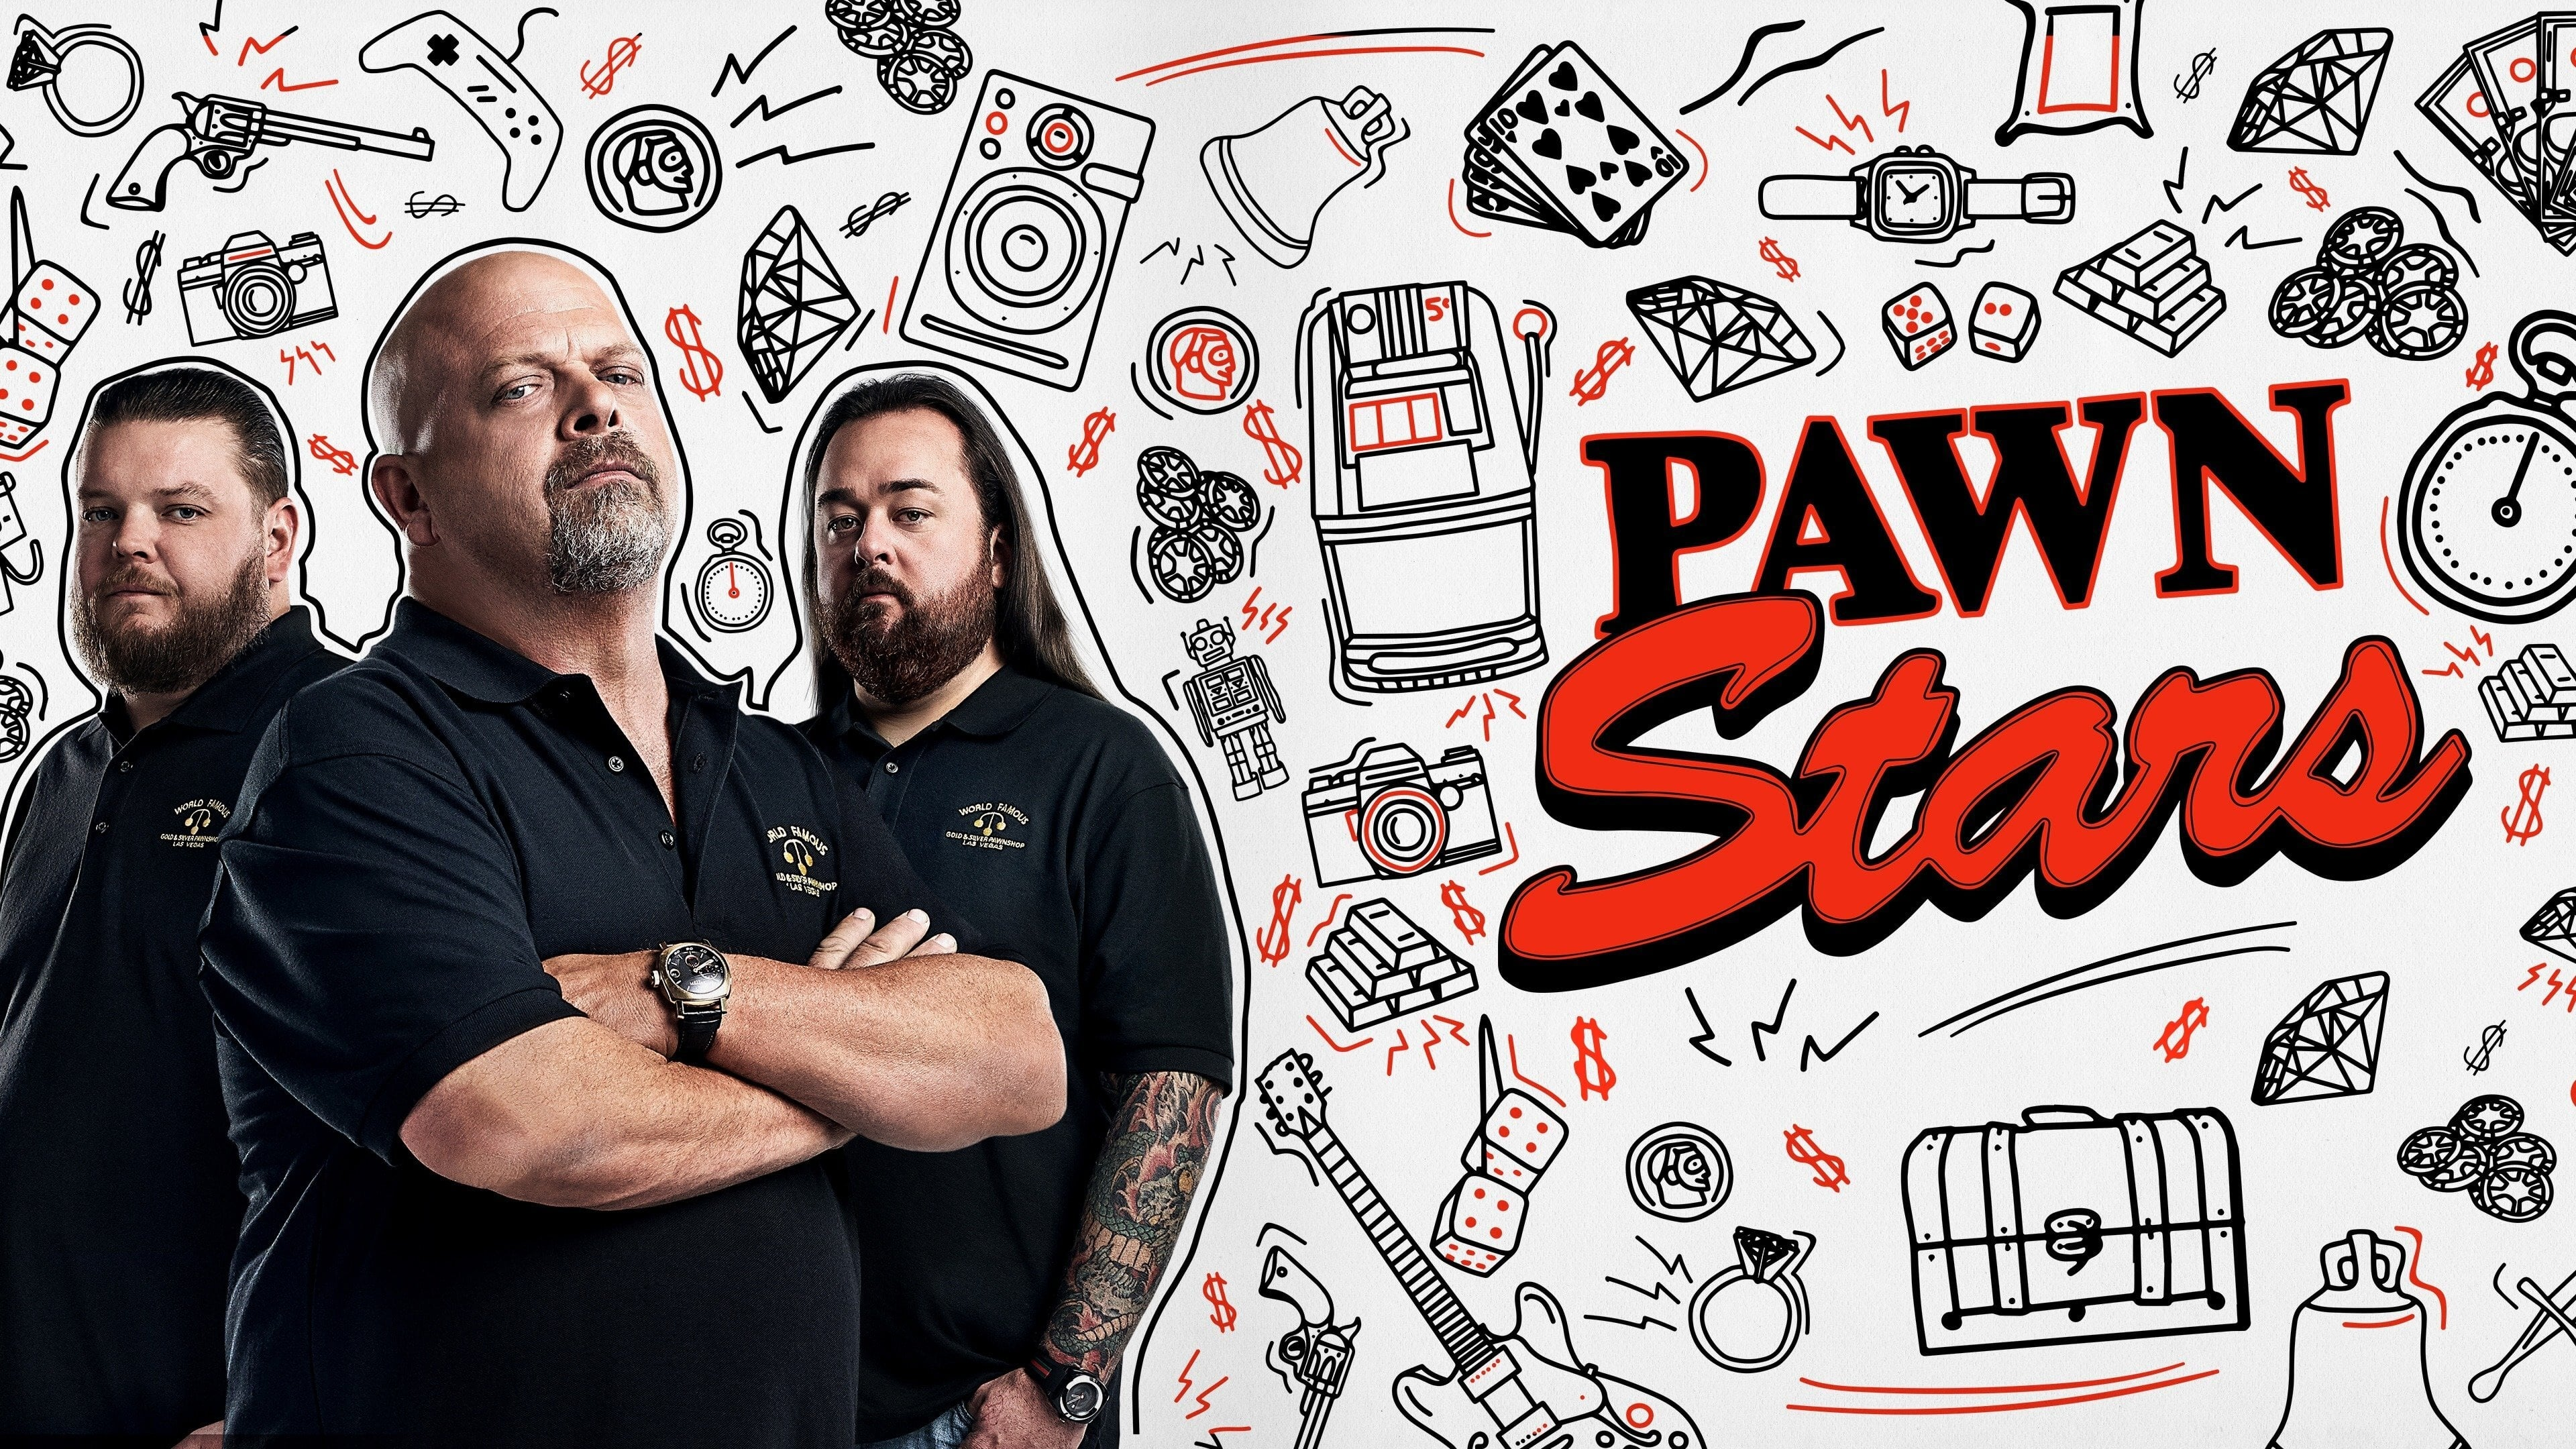 Pawn Stars - Season 5 Episode 9 : High Tops